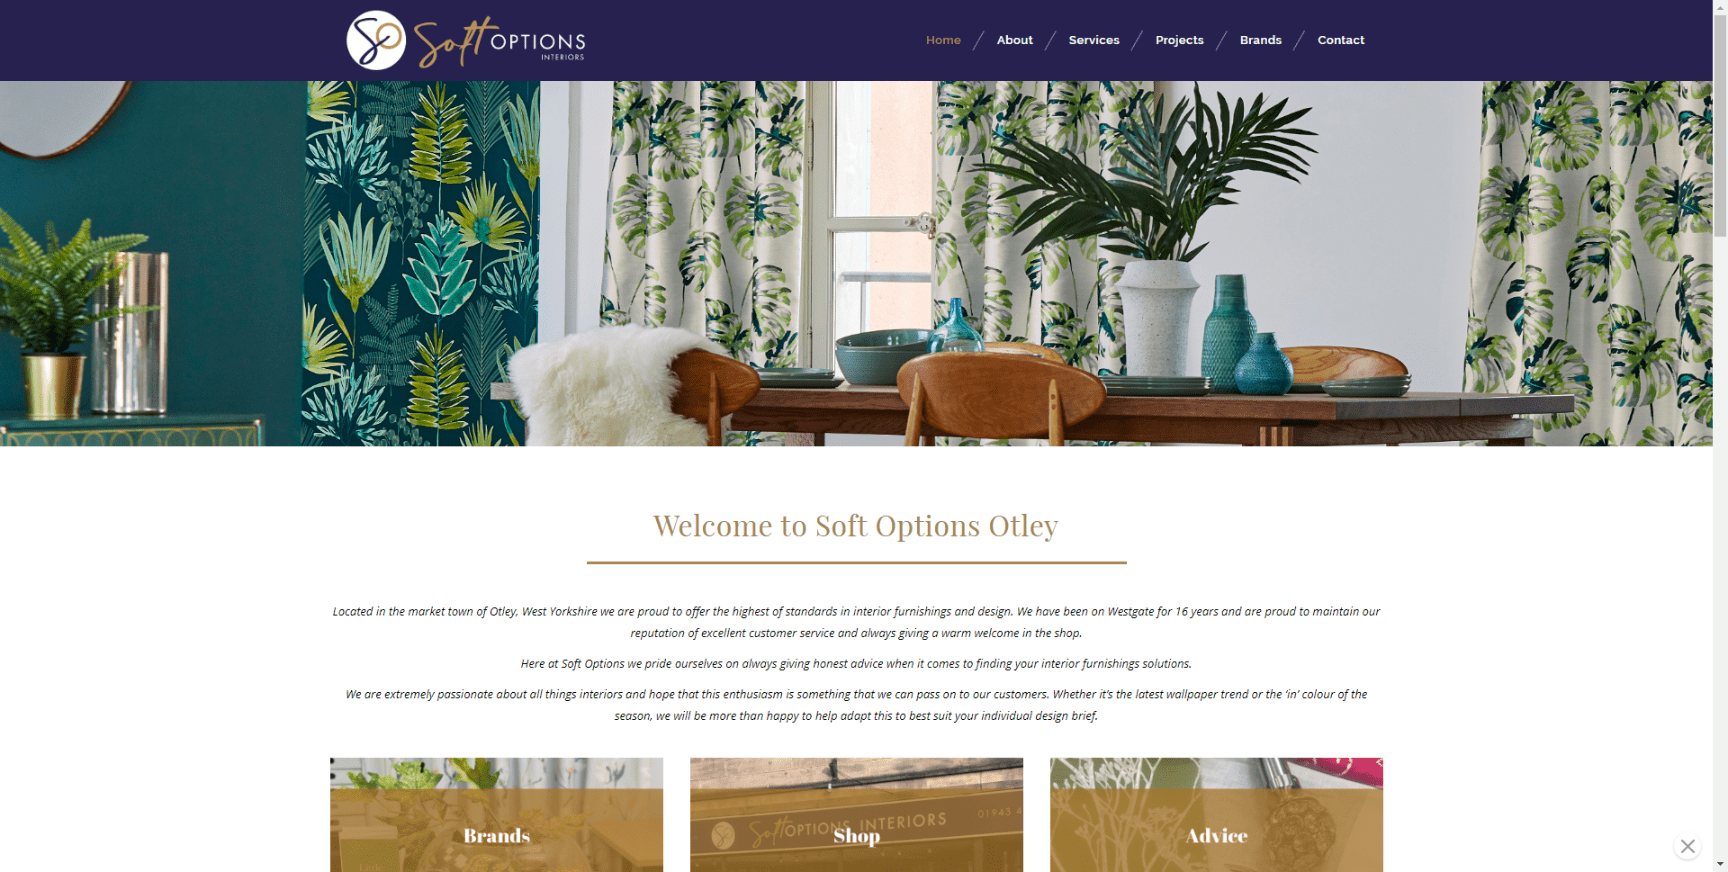 Soft Options Otley Website Build